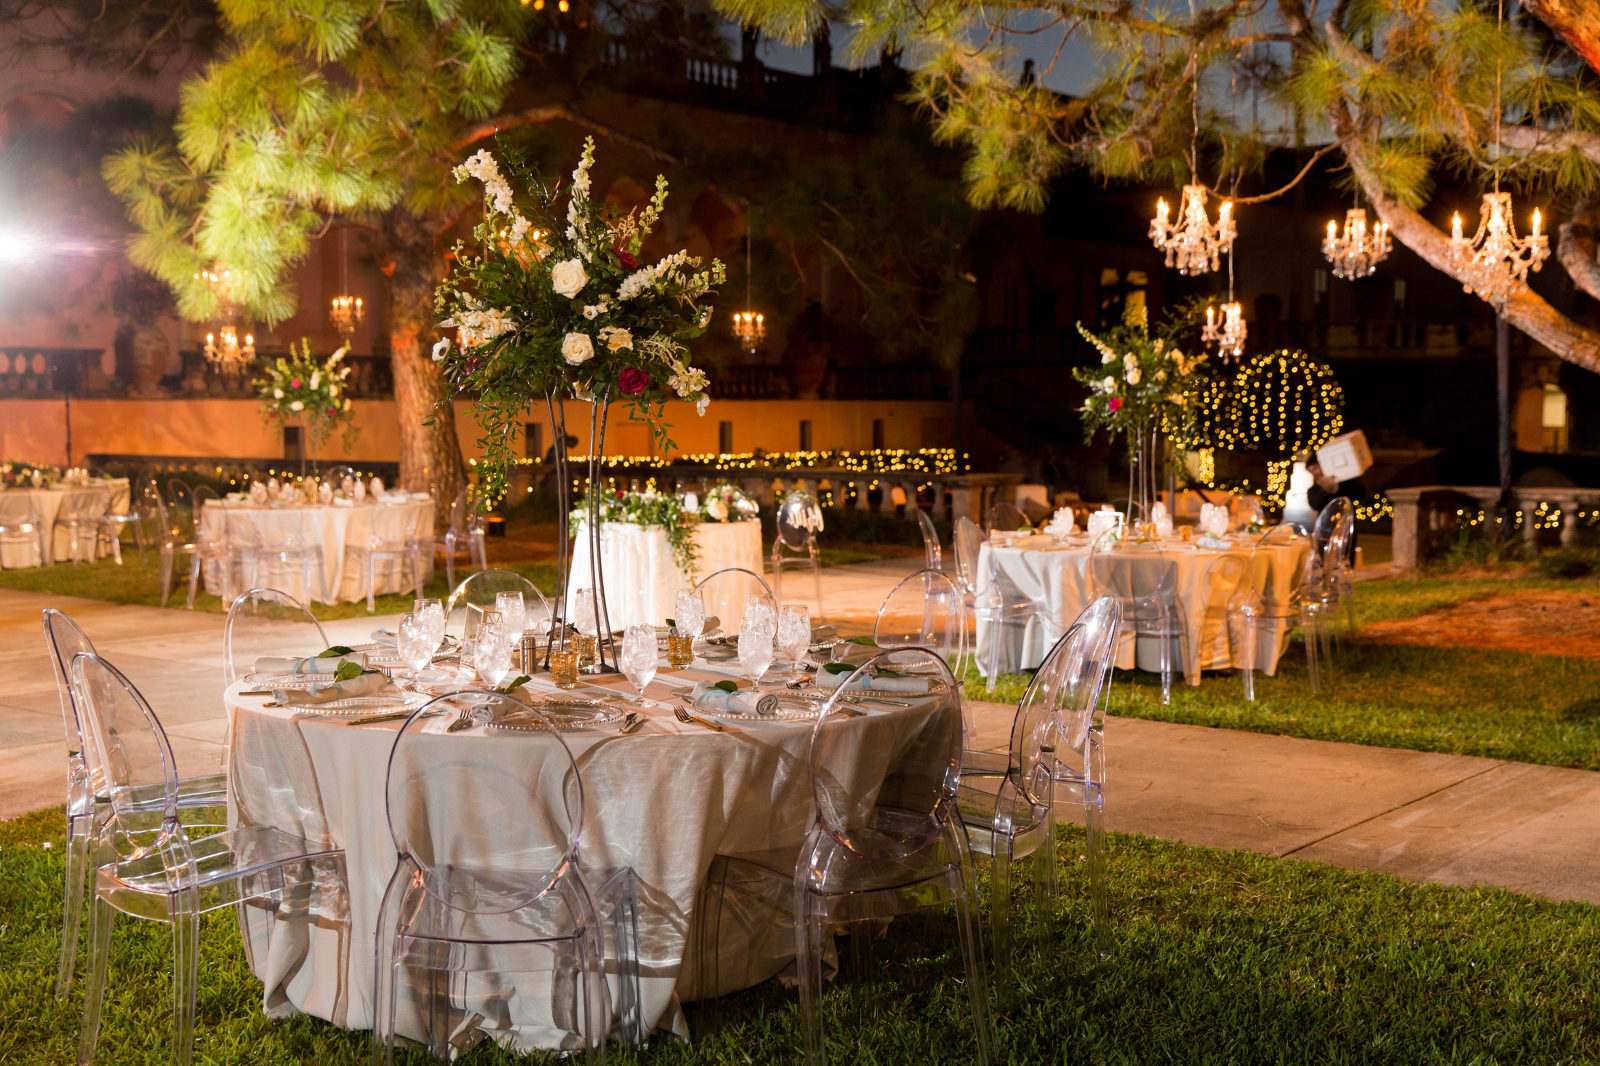 Nighttime Outdoor Garden Courtyard Wedding Reception Decor, Round Tables with Ivory Tablecloths, Ghost Chairs, Tall Greenery, White, Ivory, Red Floral Centerpiece, Crystal Chandeliers Hanging From Tree   Sarasota Wedding Venue Ringling Museum   Tampa Bay Wedding Planner NK Weddings